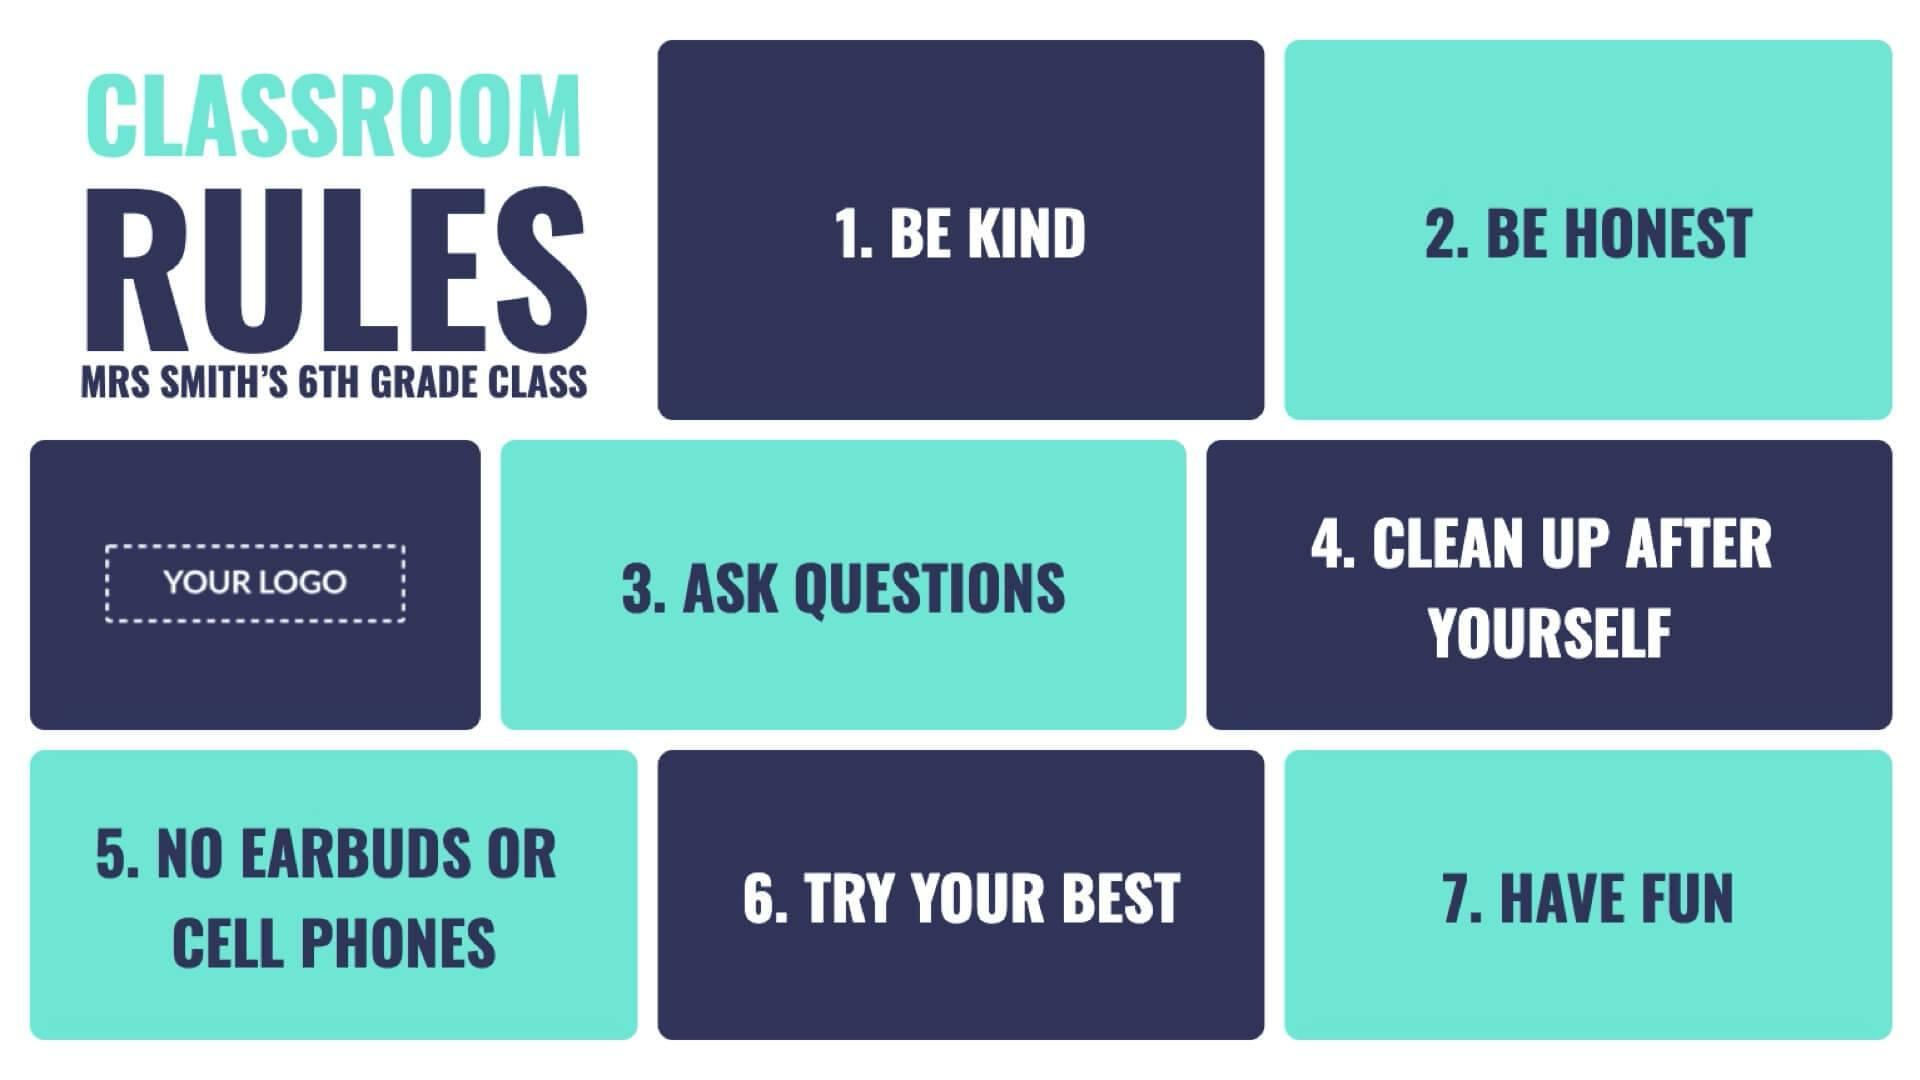 Announcement Classroom Rules Digital Signage Template